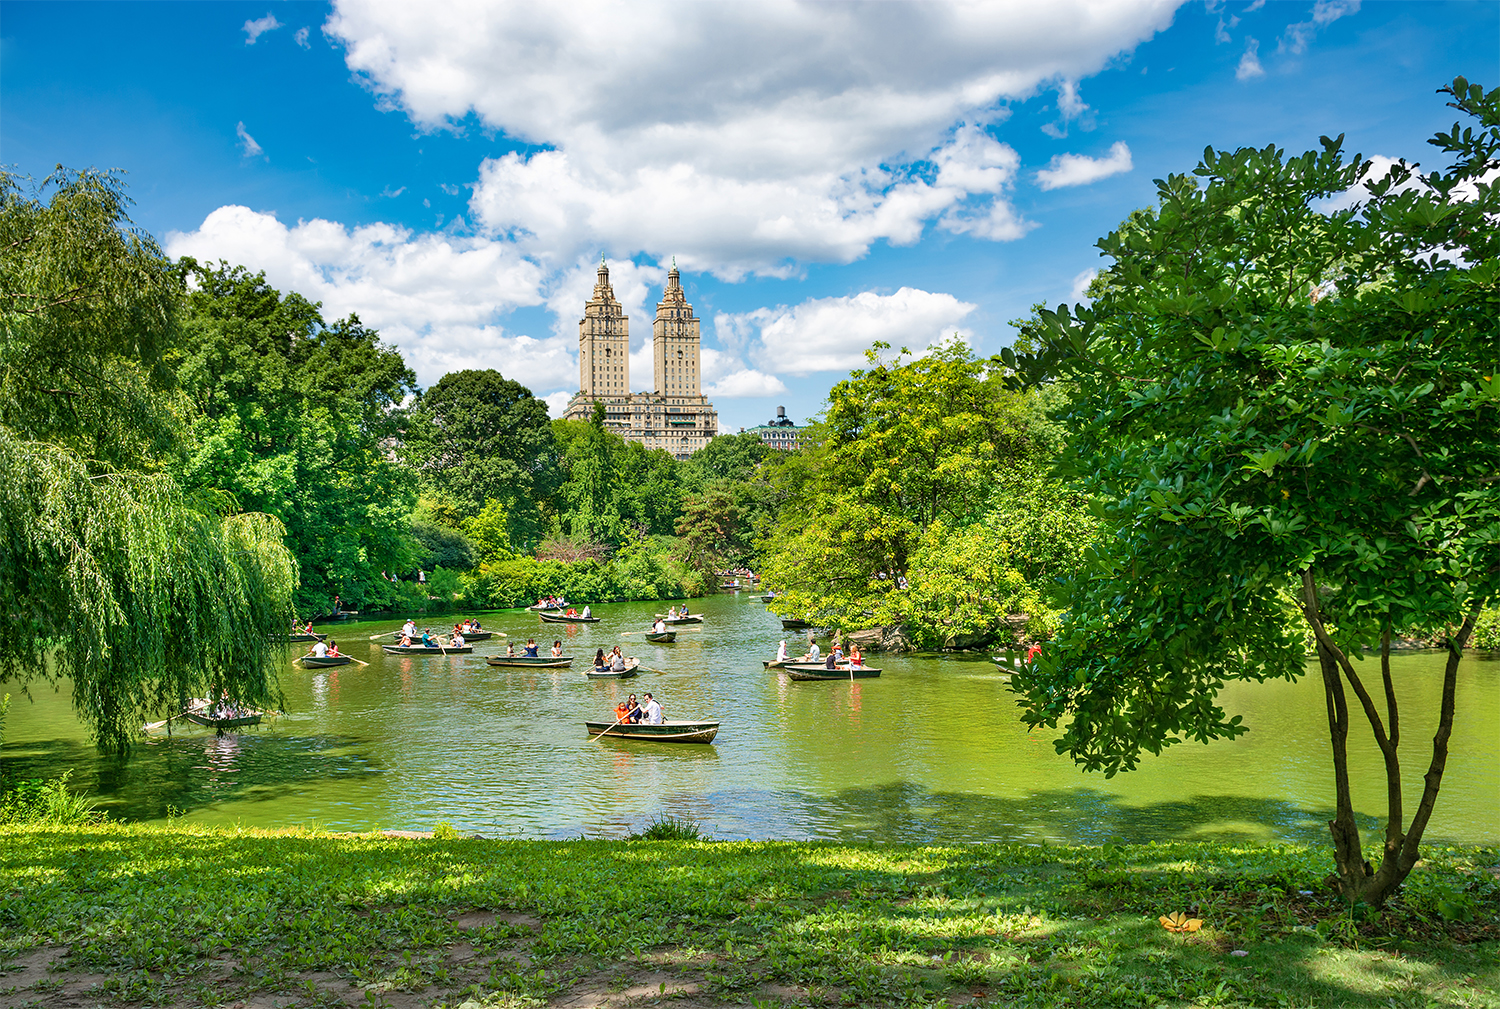 Summer scene in NYC Central Park with boaters on lake.